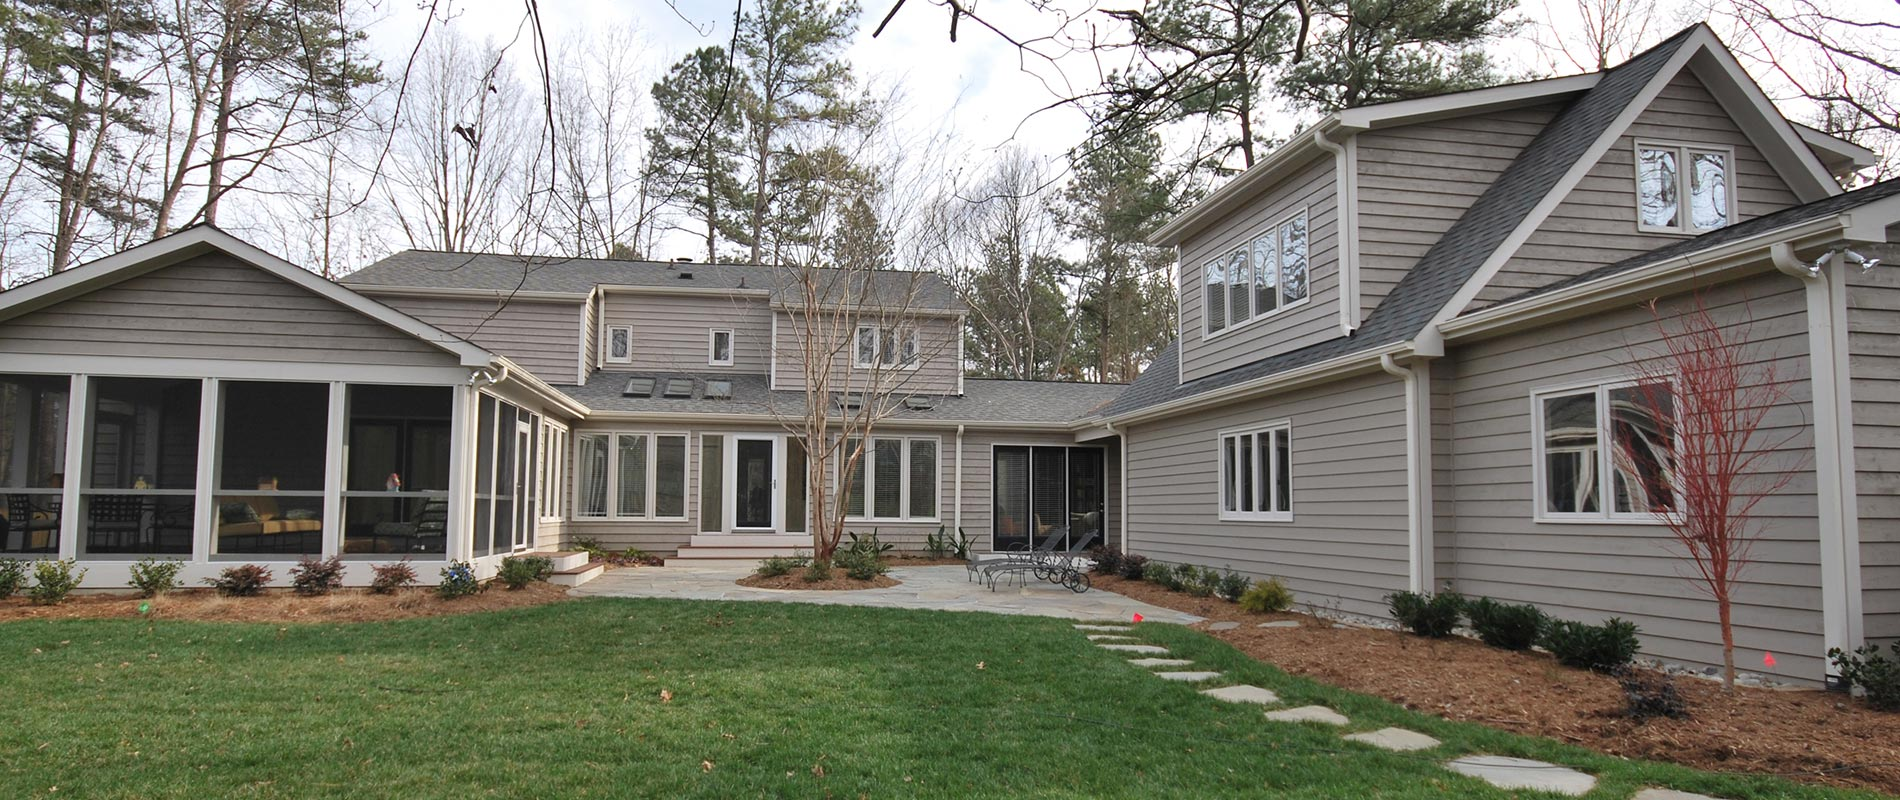 Exterior House Remodel   Complete Construction Company   Apex, NC